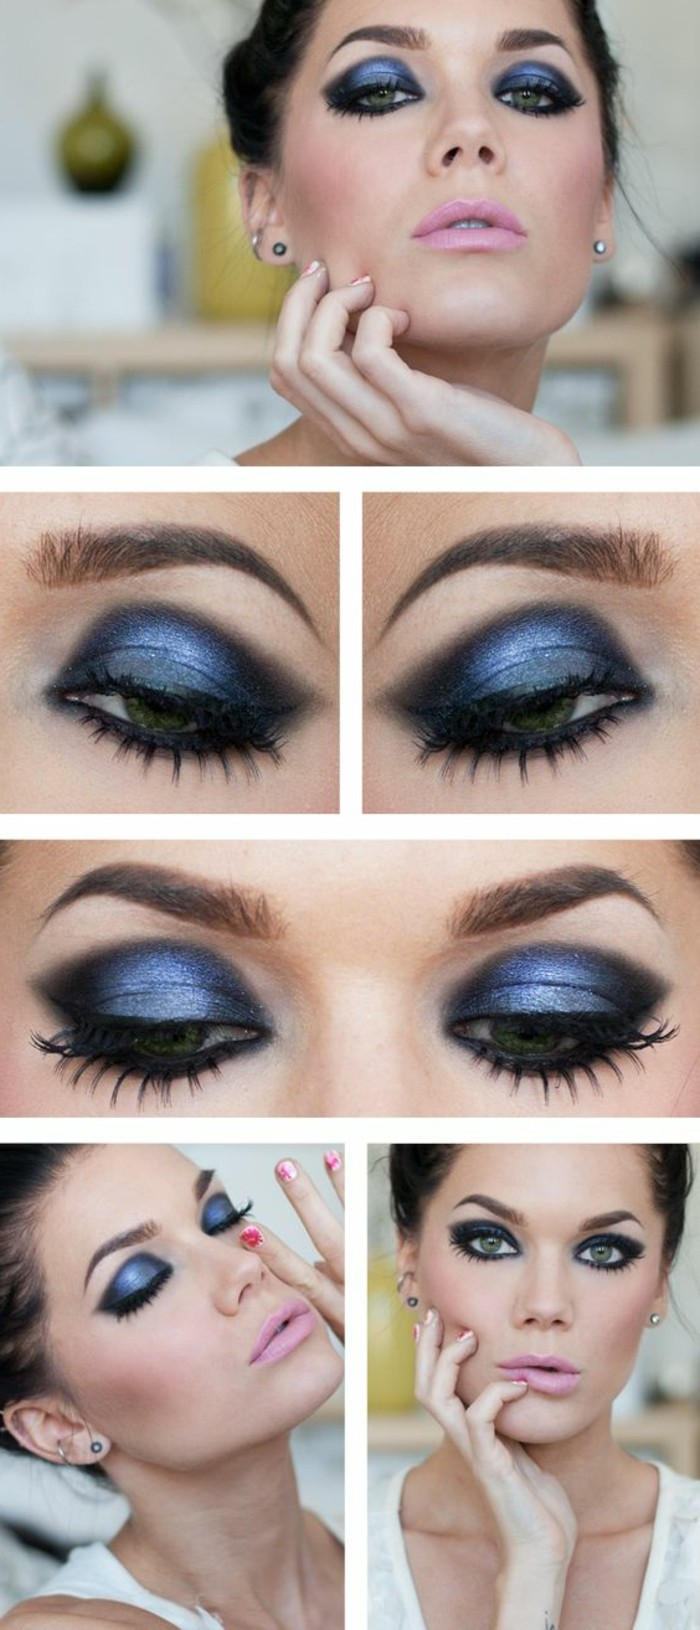 Make up grune augen blaues kleid